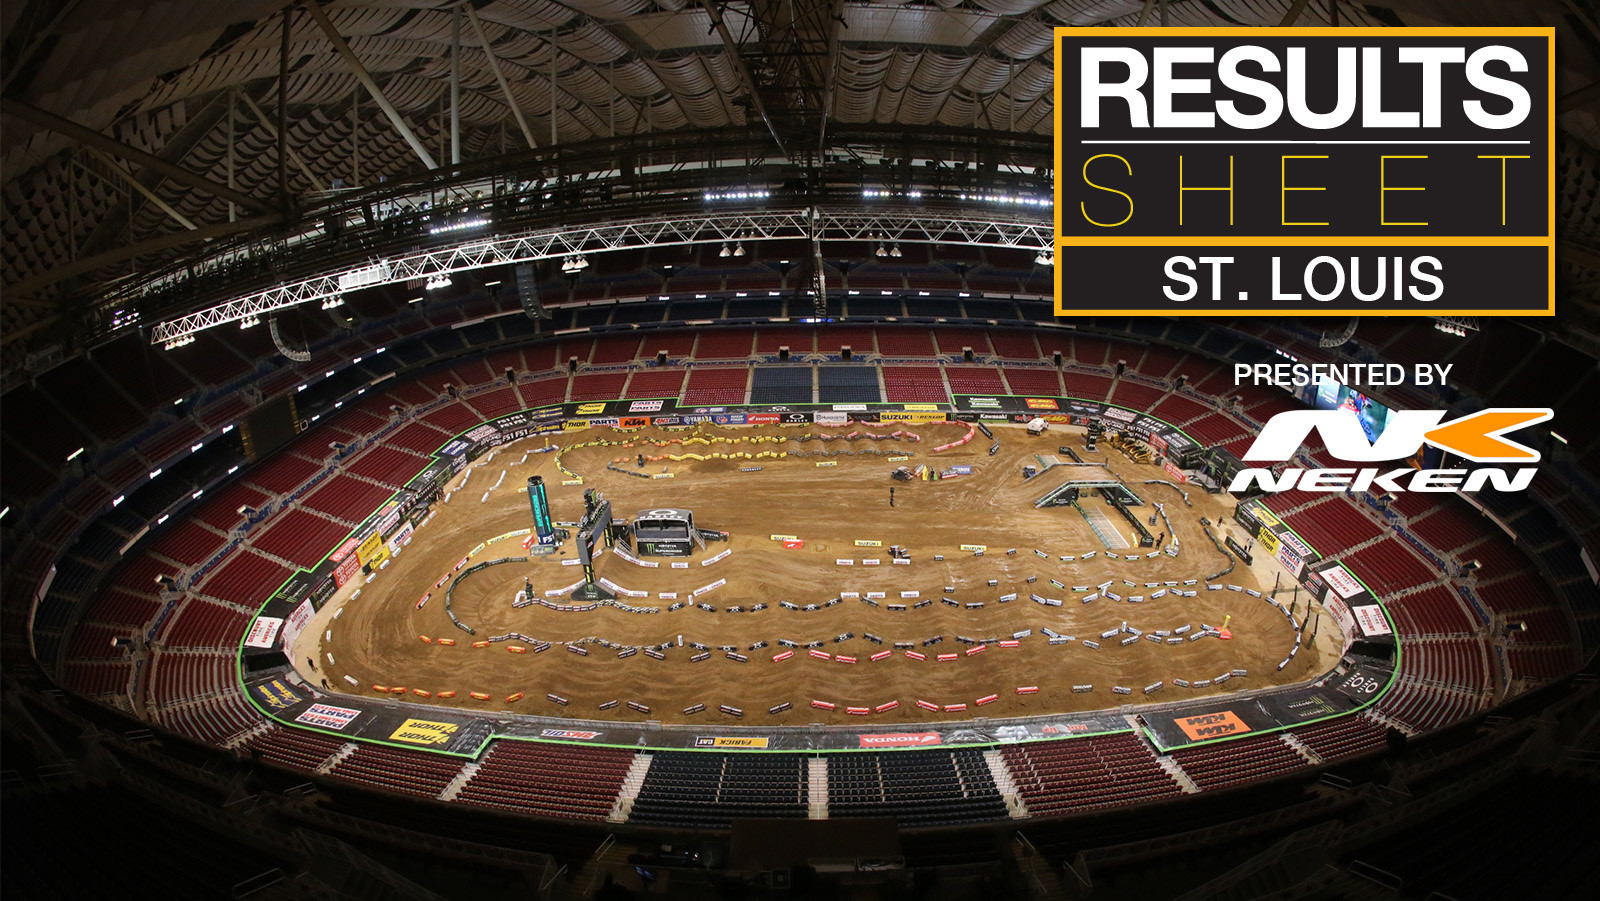 Results Sheet: 2018 St. Louis Supercross